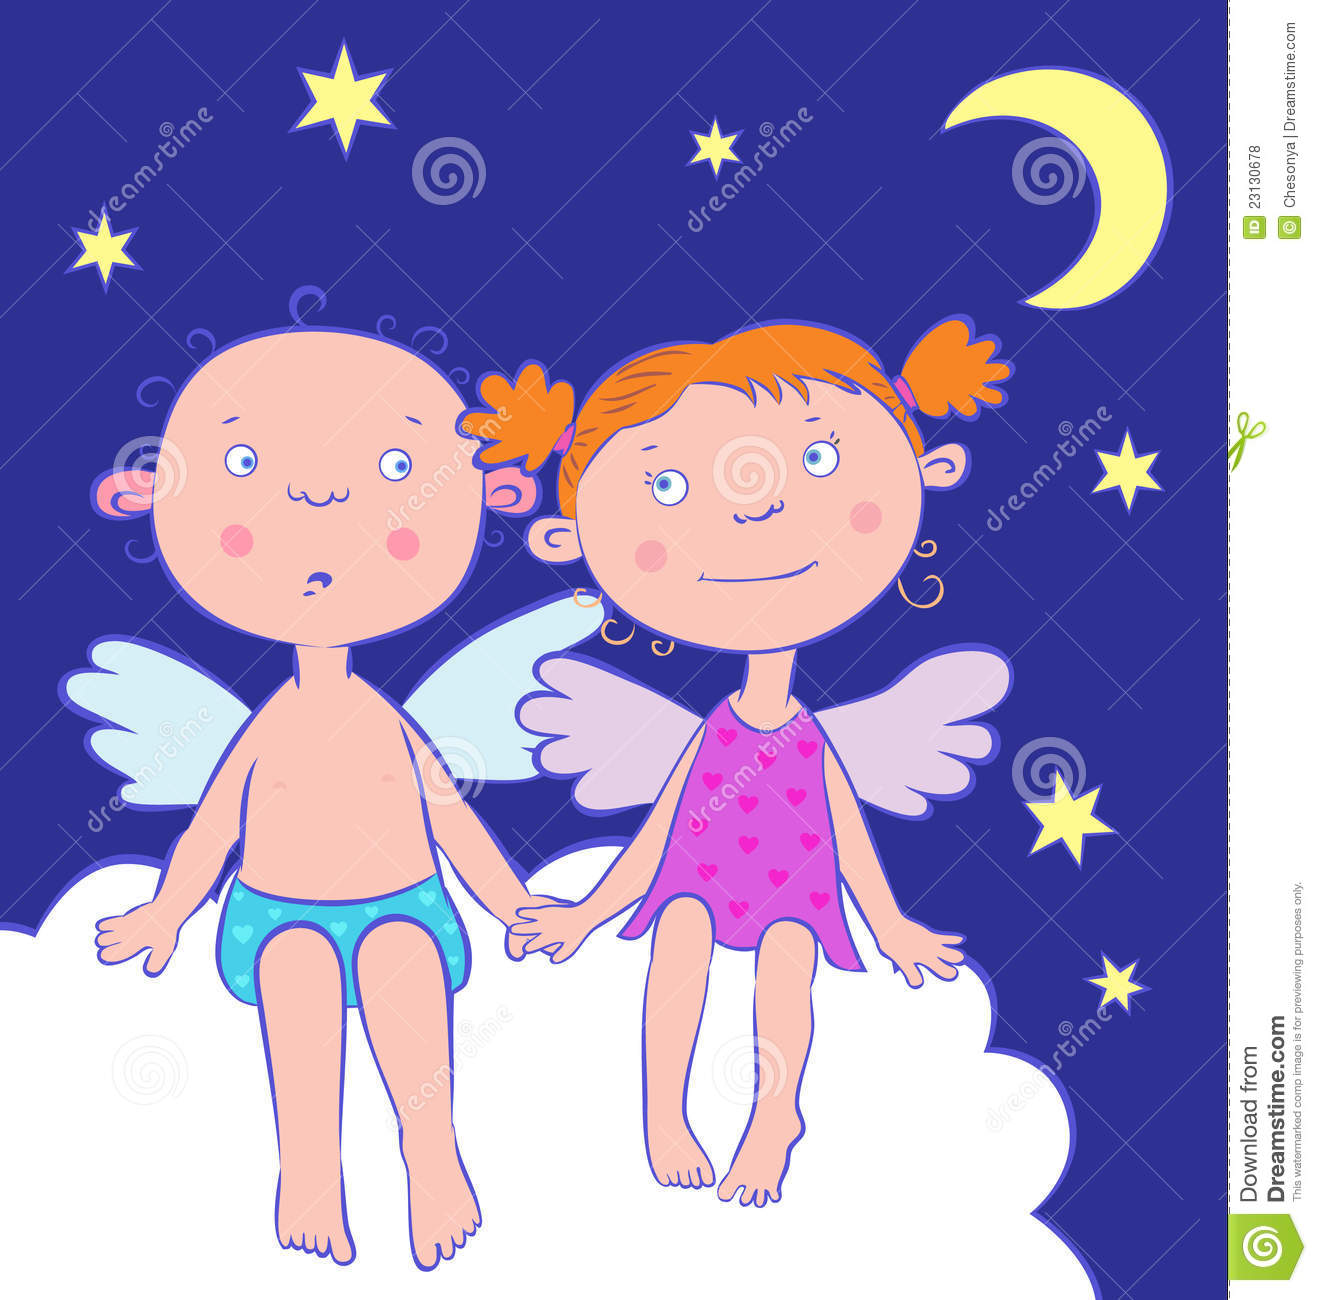 Kids at night with moon royalty free stock photography image - Angels Boy And Girl At Night Under The Moon Royalty Free Stock Photos